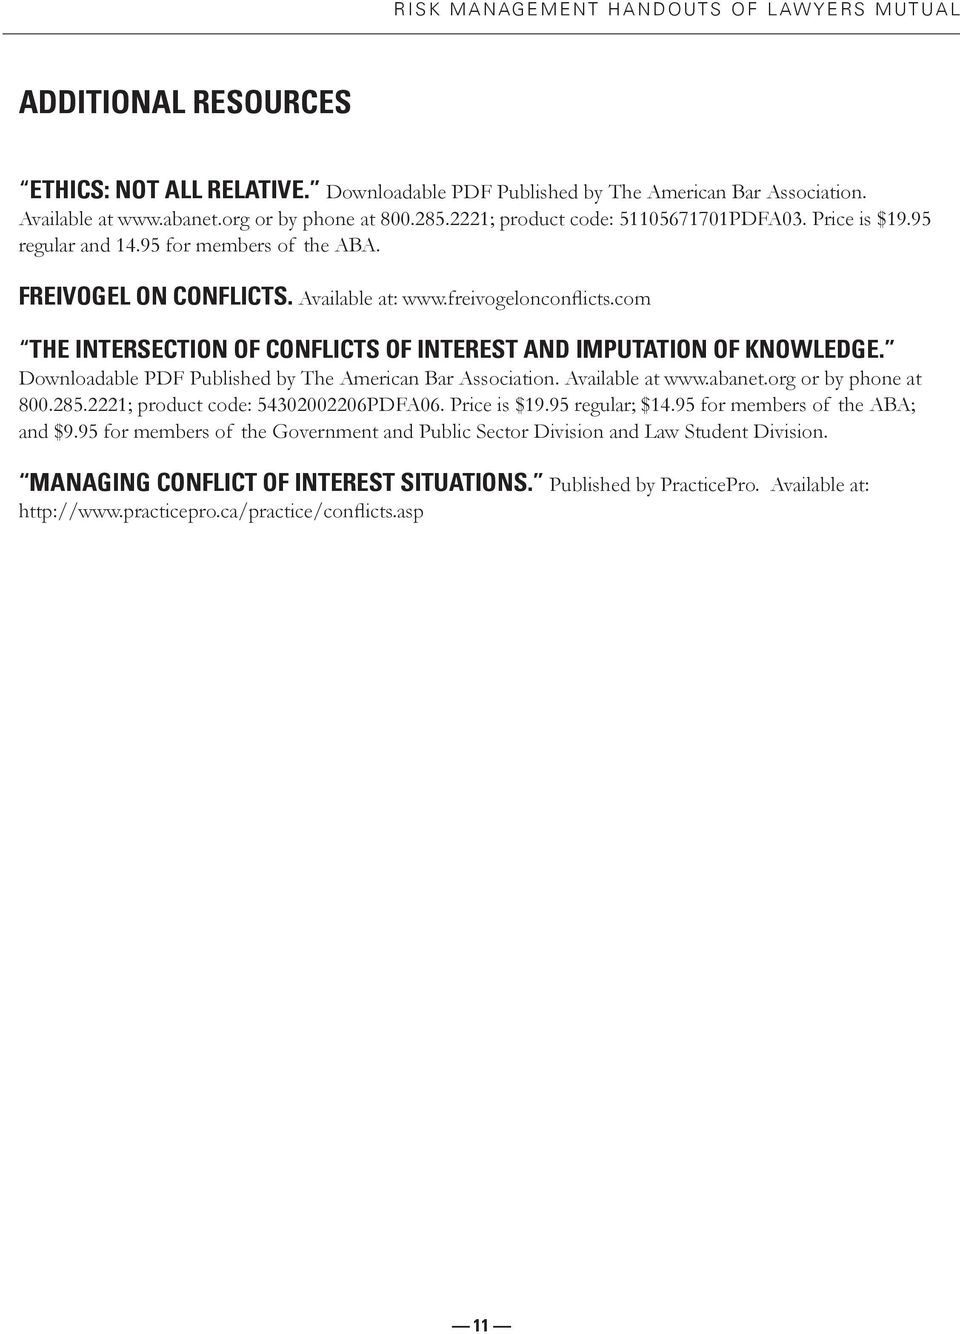 com THE INTERSECTION OF CONFLICTS OF INTEREST AND IMPUTATION OF KNOWLEDGE. Downloadable PDF Published by The American Bar Association. Available at www.abanet.org or by phone at 800.285.